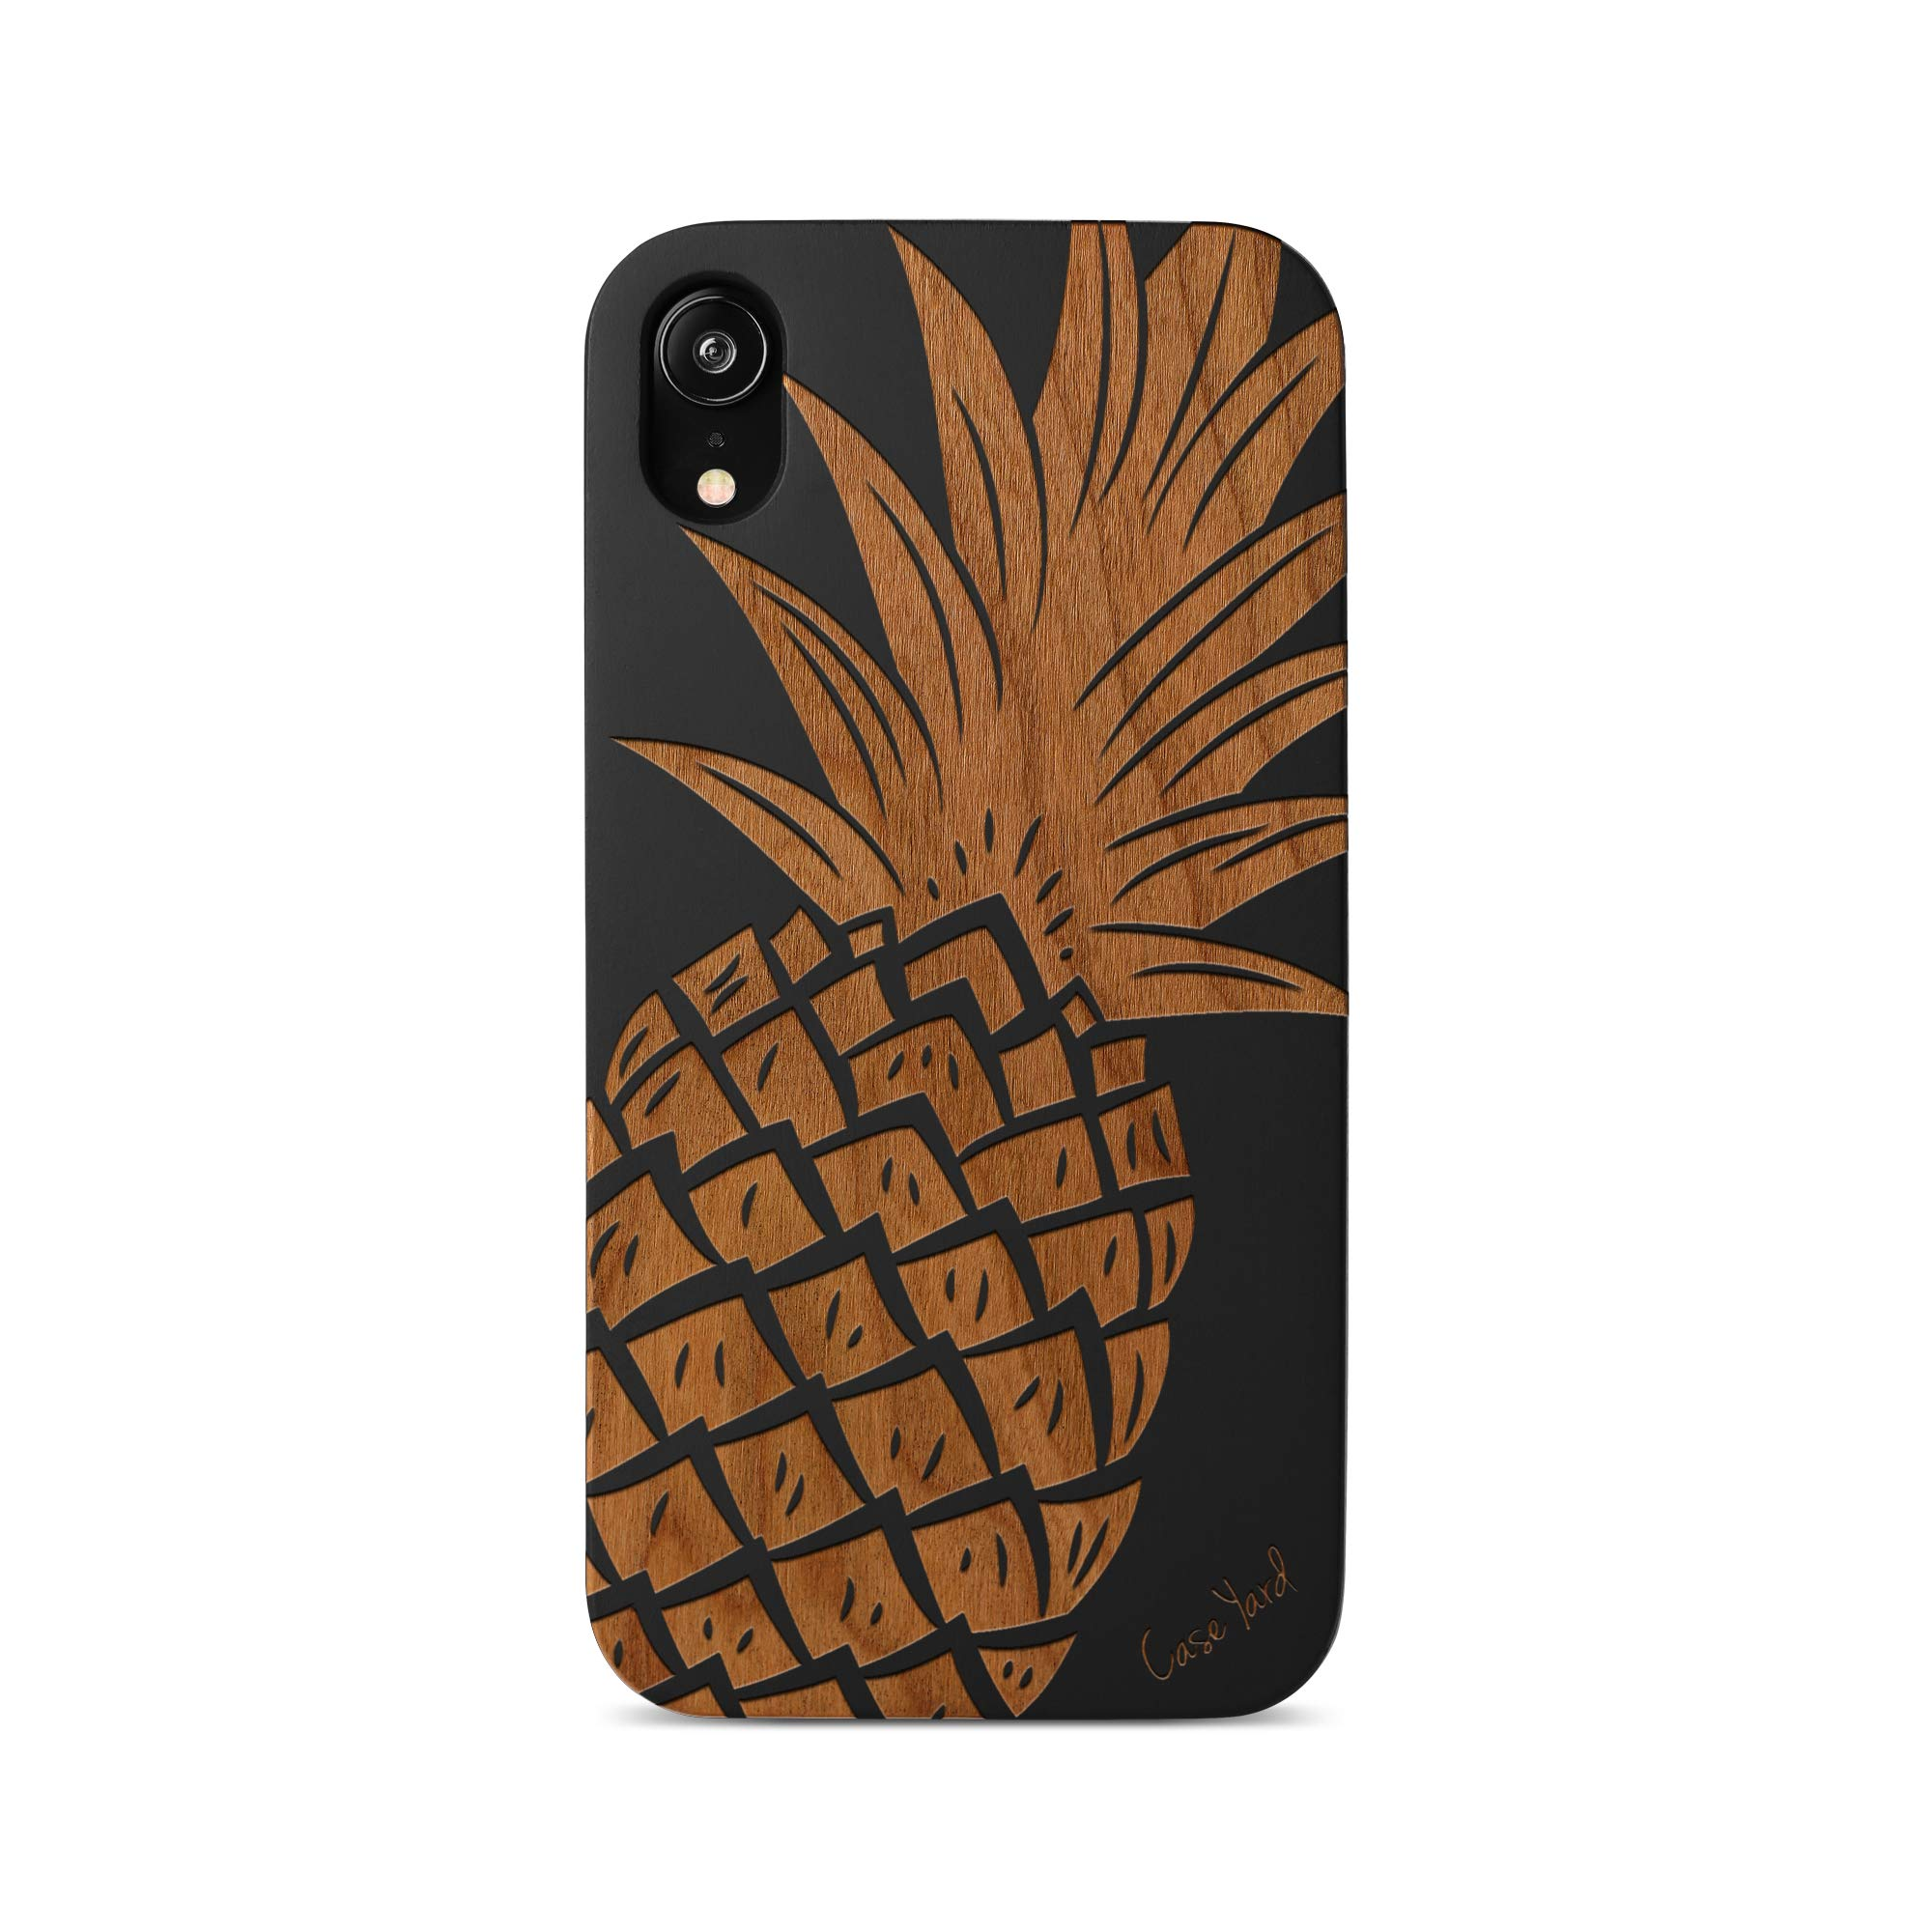 iPhone 11 Pro Max Case by Case Yard Fit for iPhone 11 Pro Max 6.5-Inch [ 2019 Release ] Shock-Absorption iPhone 11 Pro Max Phone Cover Wood Black iPhone 11 Pro Max Cases Pineapple